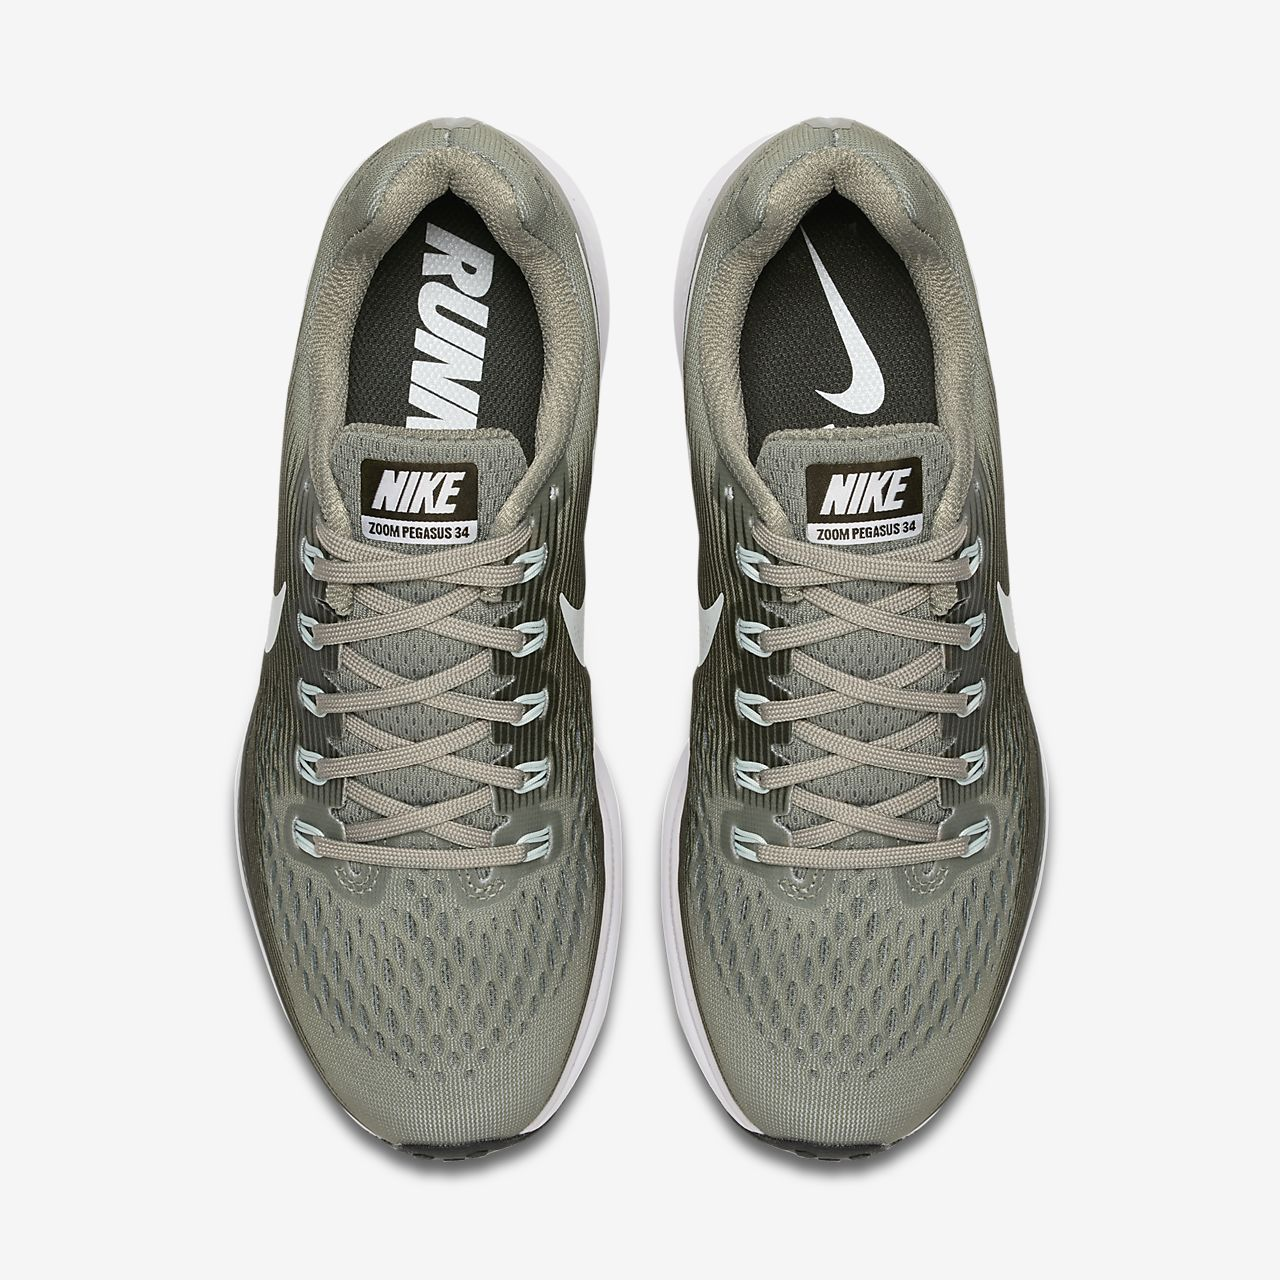 0c57e9830b8d7 Nike Air Zoom Pegasus 34 Women s Running Shoe- Dark  Stucco Sequoia Black Barely Grey